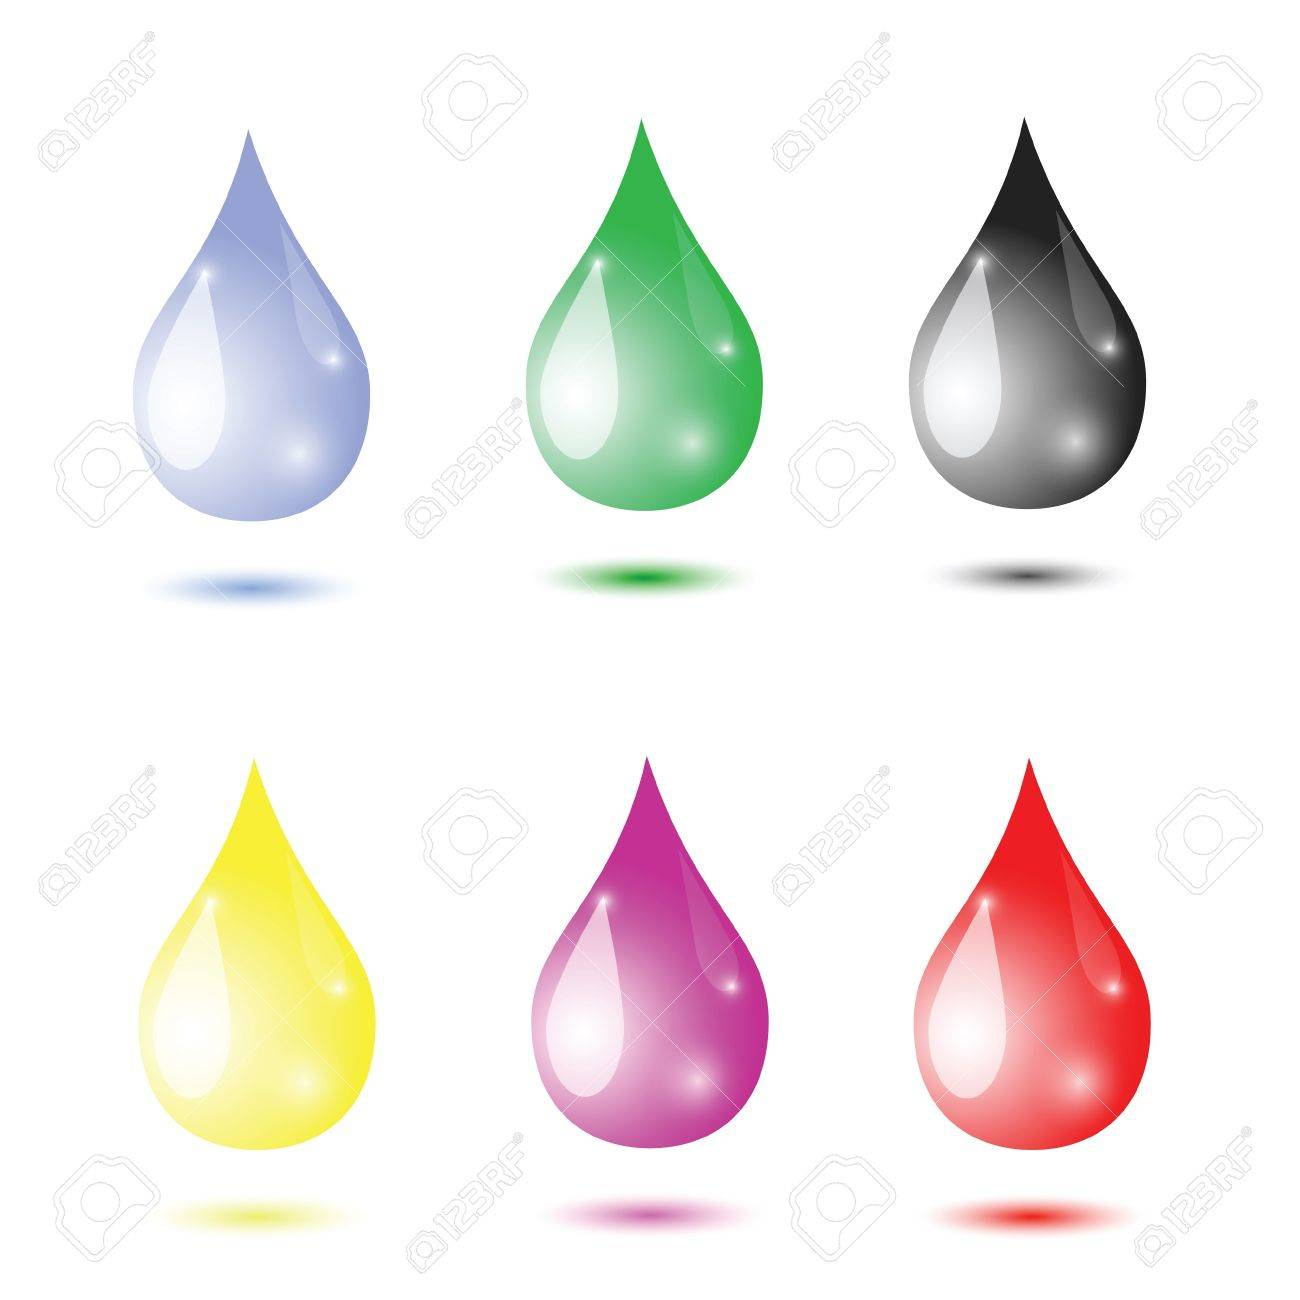 colorful illustration with water drops for your design Stock Vector - 20162442